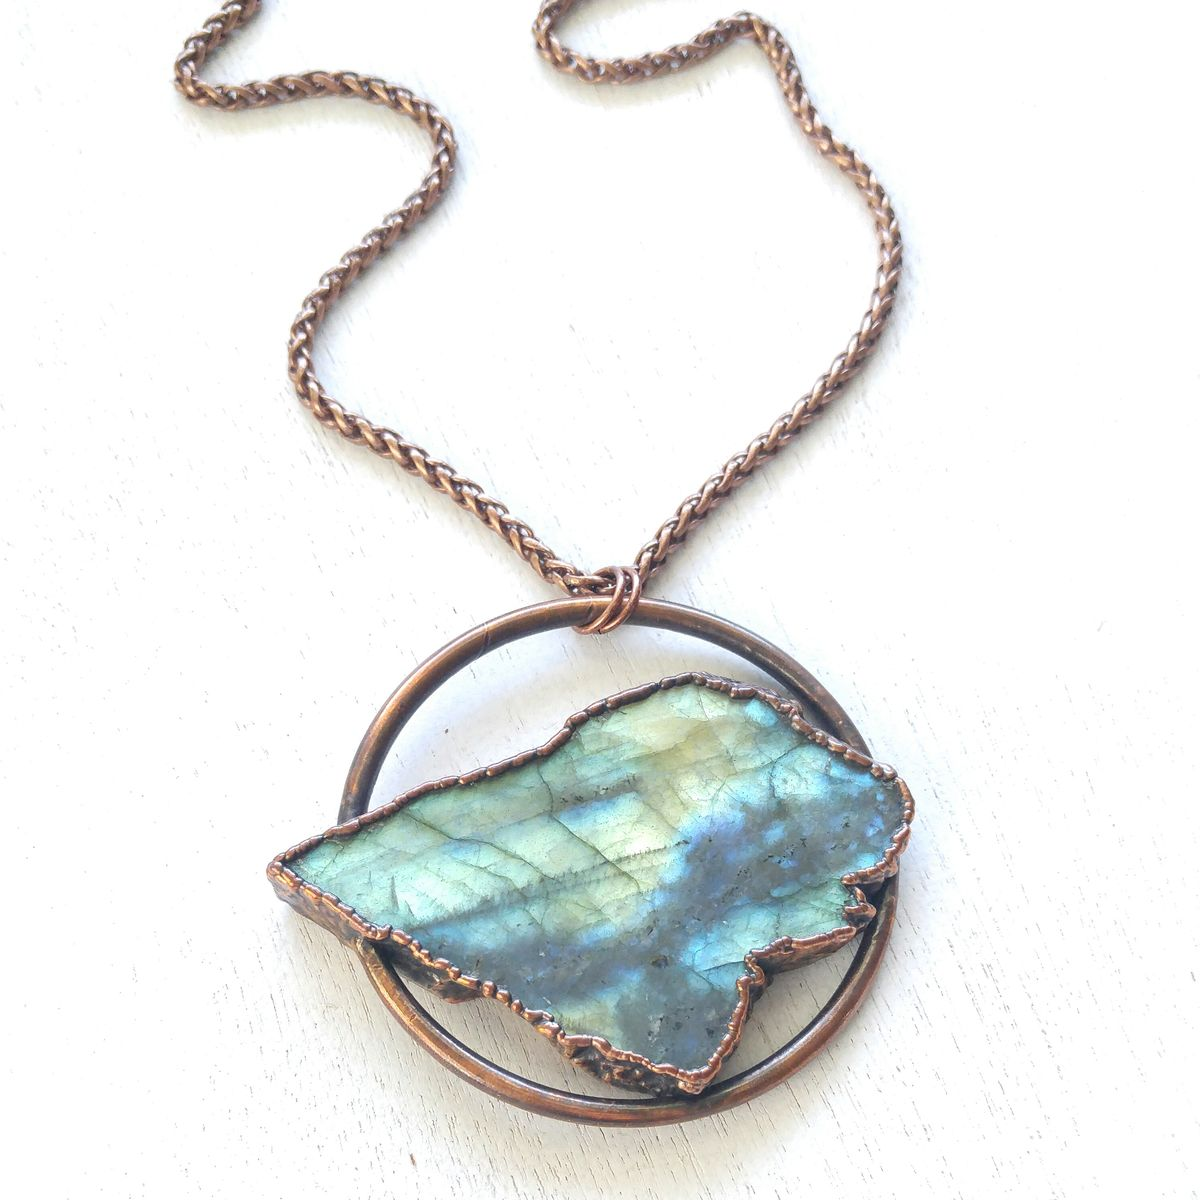 Labradorite Orb Necklace - product images  of